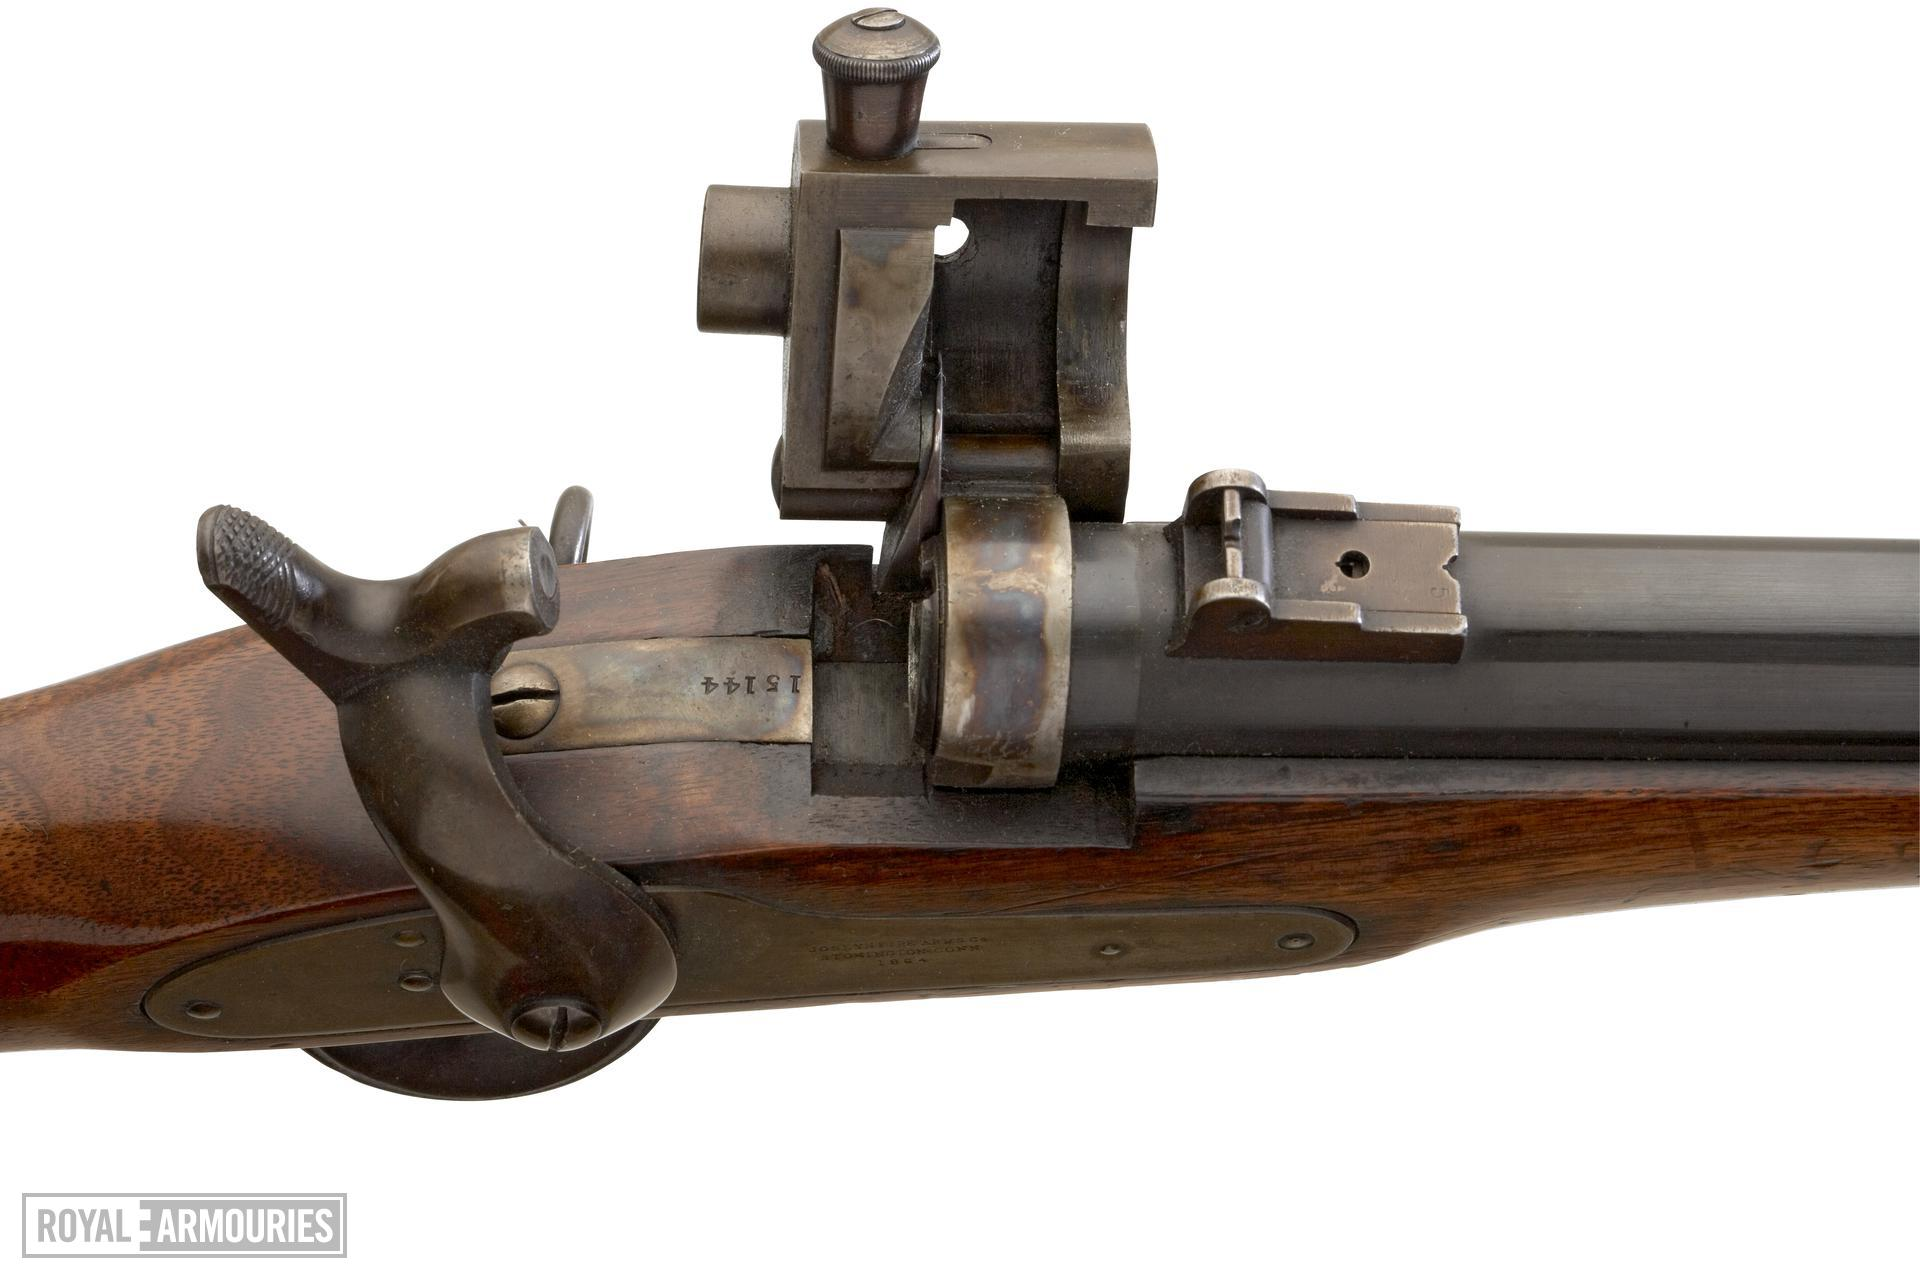 Rimfire breech-loading military carbine - Joslyn Carbine